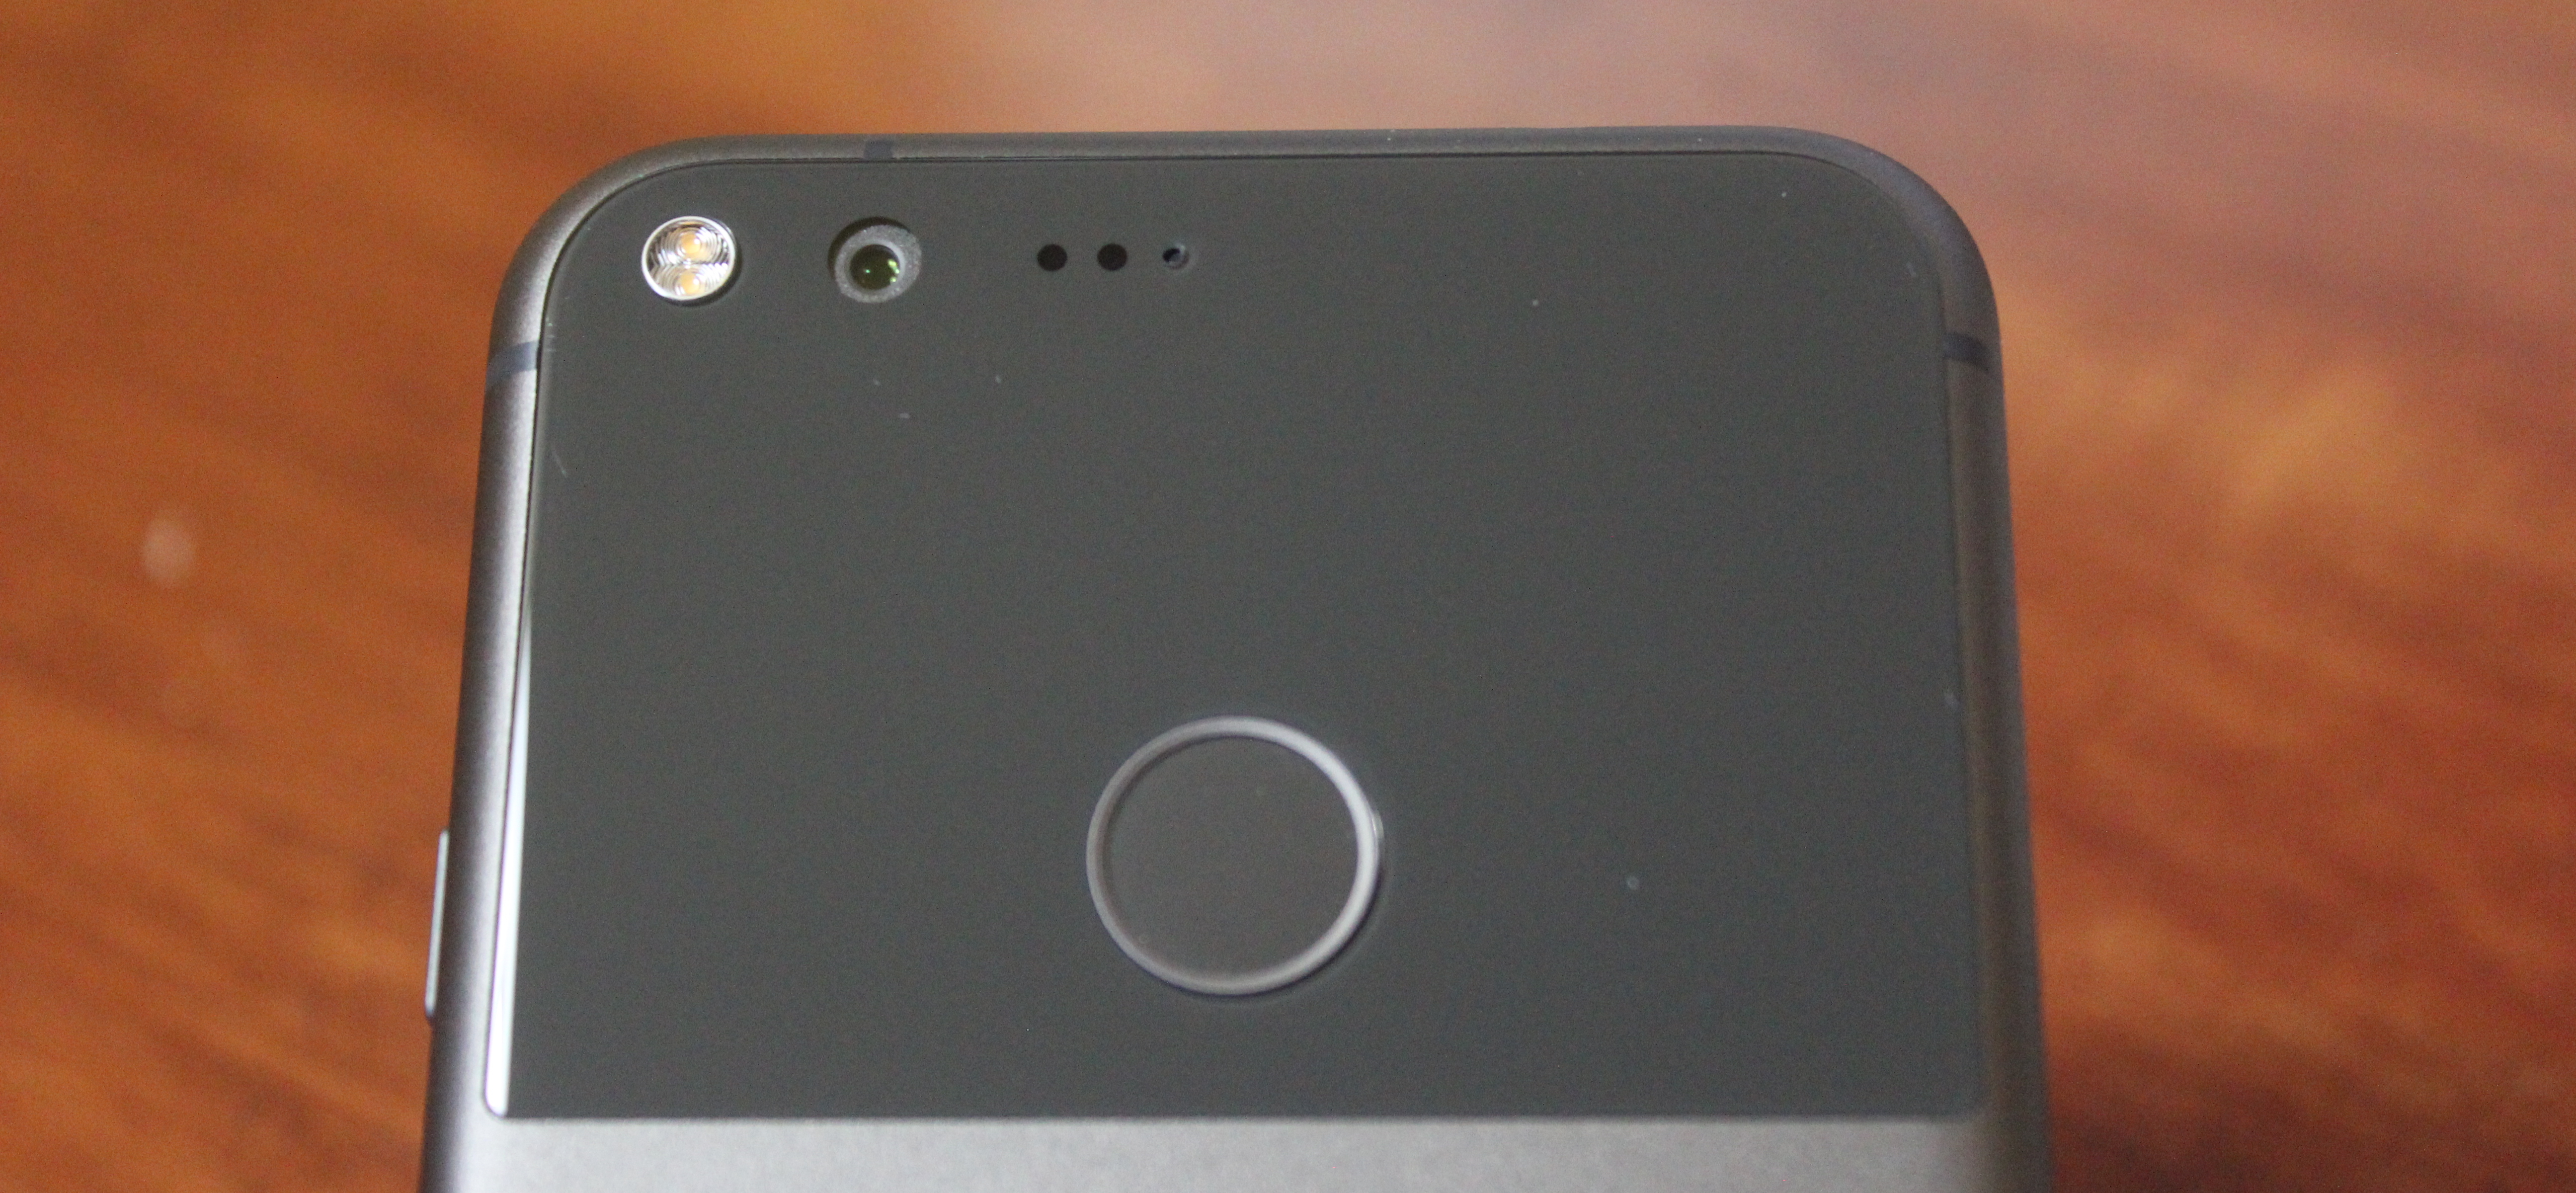 Google stops updating the original Pixel and Pixel XL with security patches